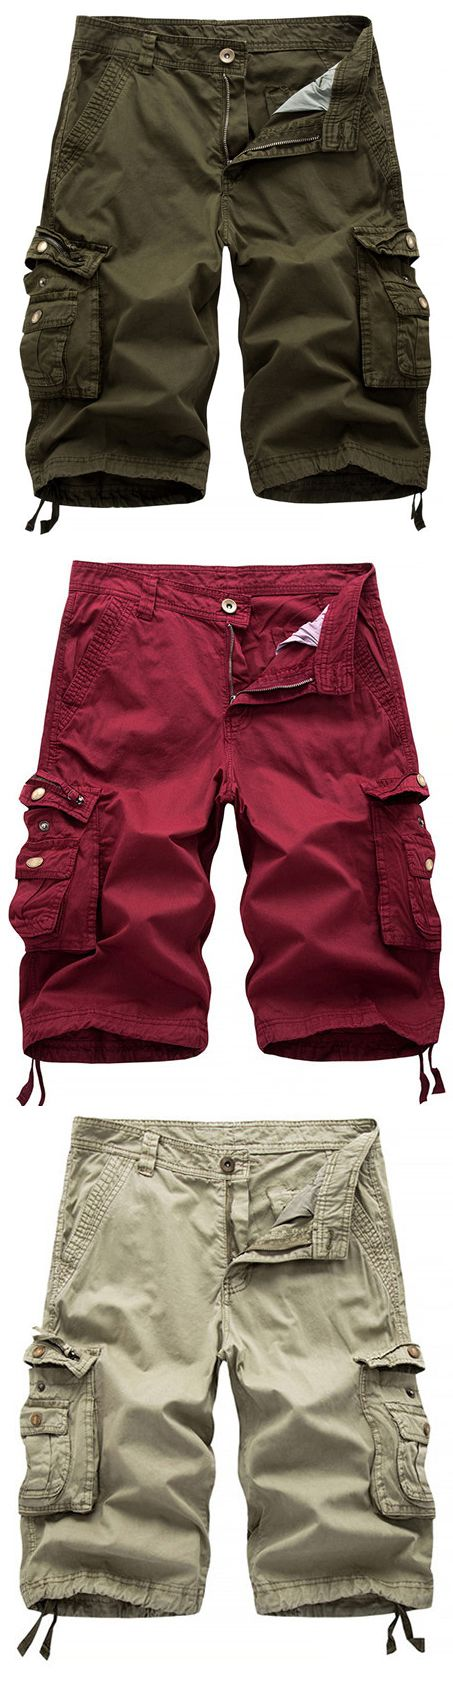 Mens Summer Multi-pocket Solid Color Cargo Pants Casual Cotton Beach Shorts